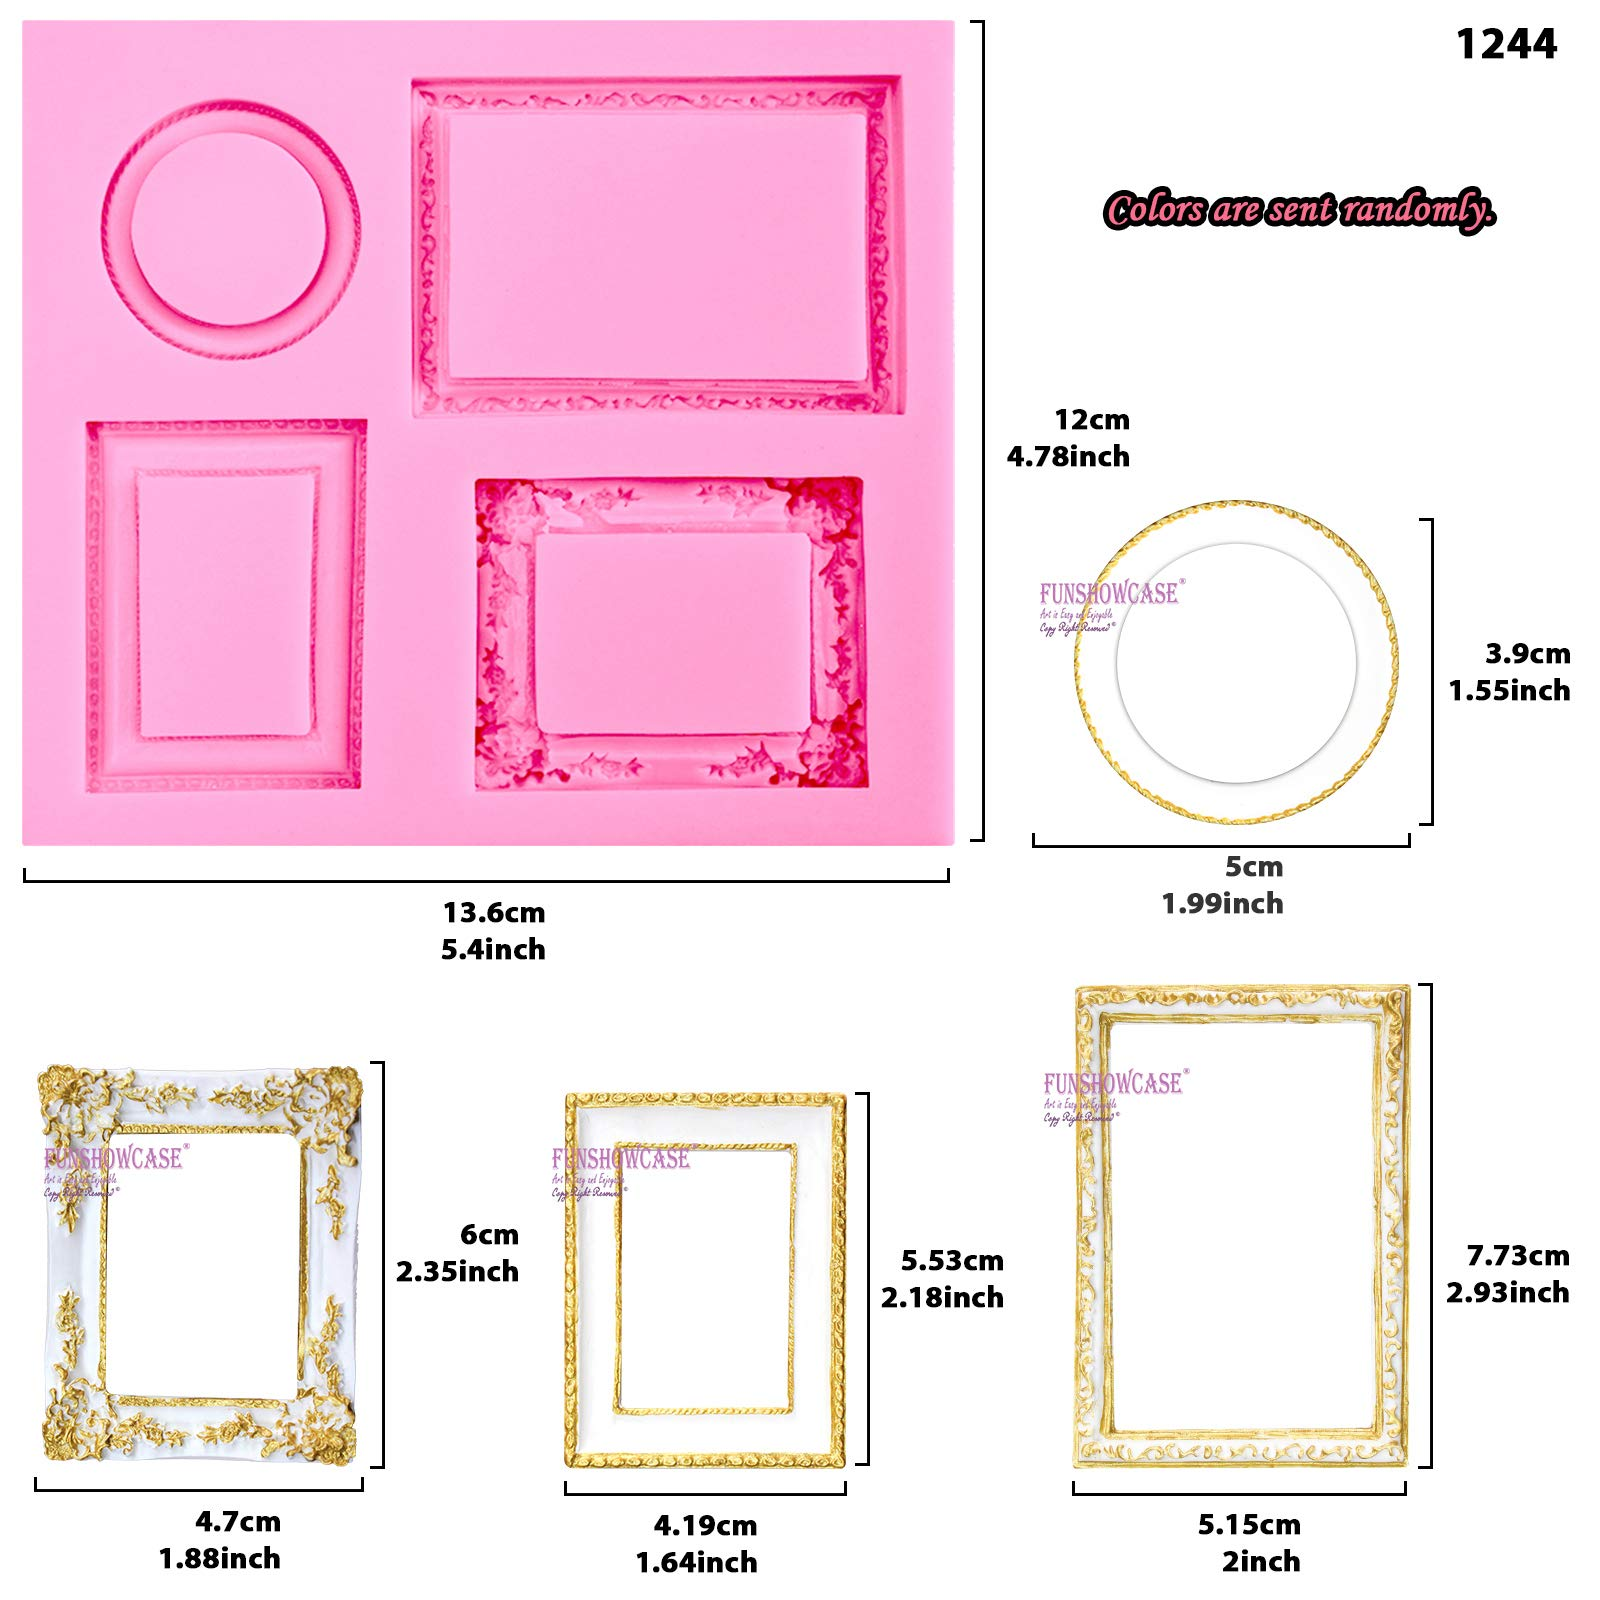 Funshowcase Mirror Frame Candy Silicone Mold, 3 in Set for Sugarcraft, Cake Decoration, Cupcake Topper, Chocolate, Fondant, Jewelry, Polymer Clay, Epoxy Resin, Crafting Projects by FUNSHOWCASE (Image #4)